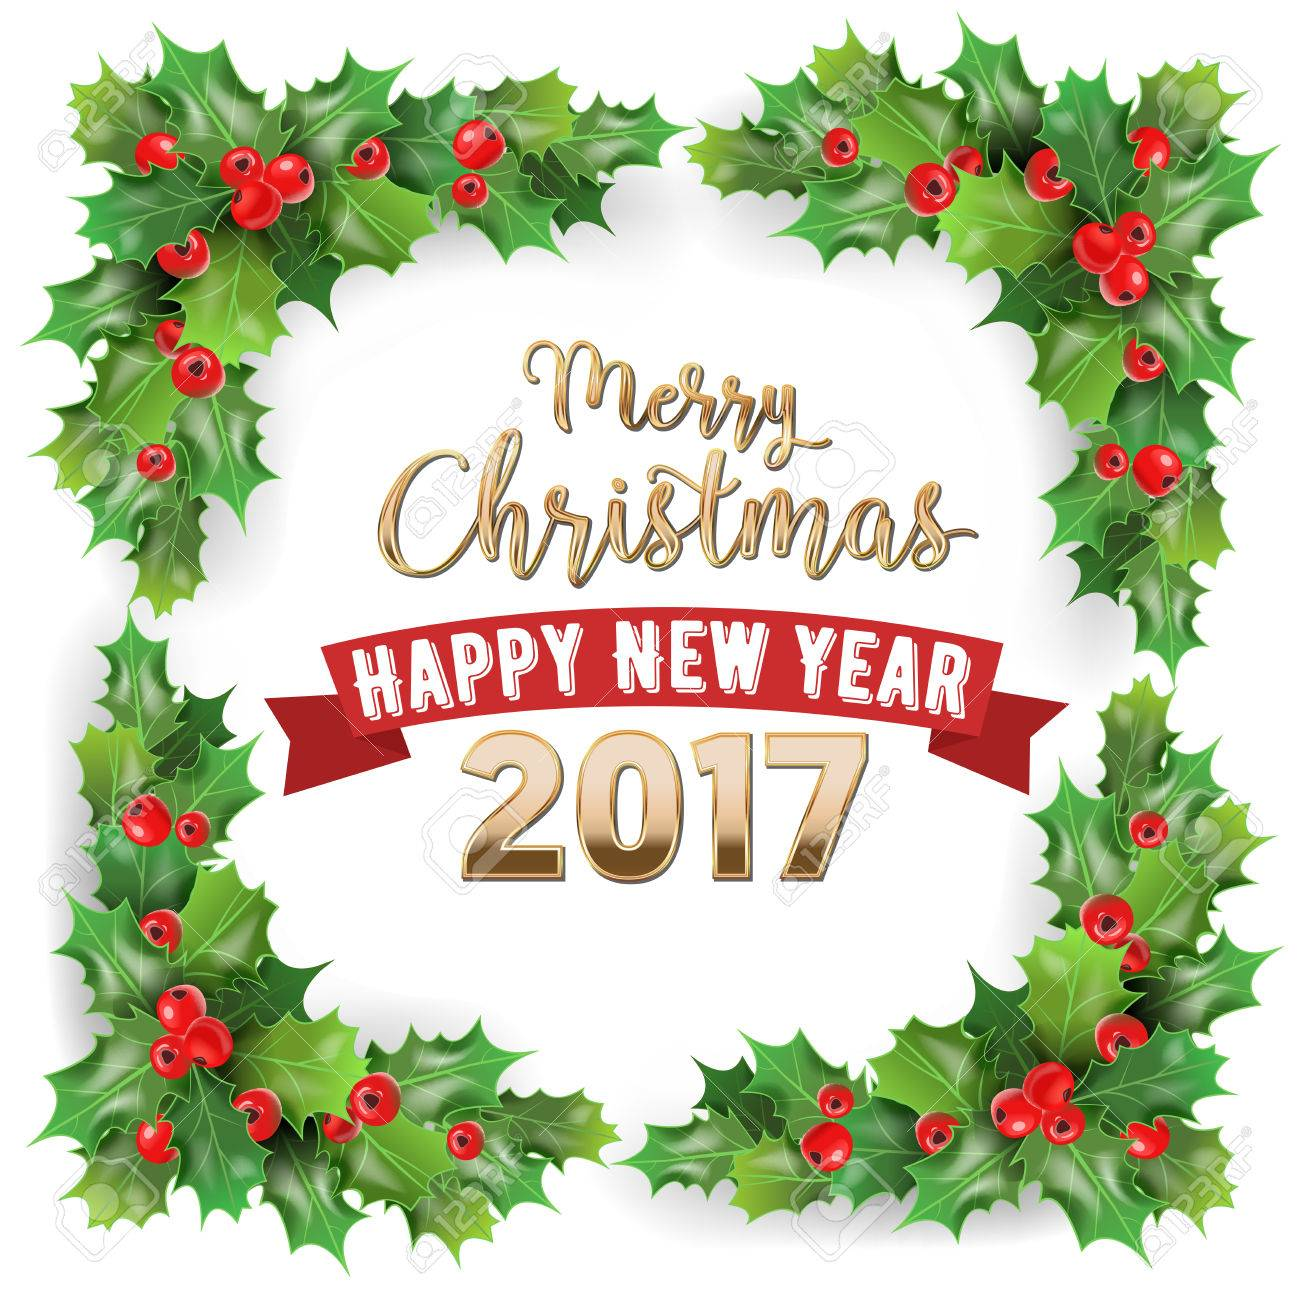 1300x1300 Merry Christmas 2017 And Happy New Year Holly Berries Winter